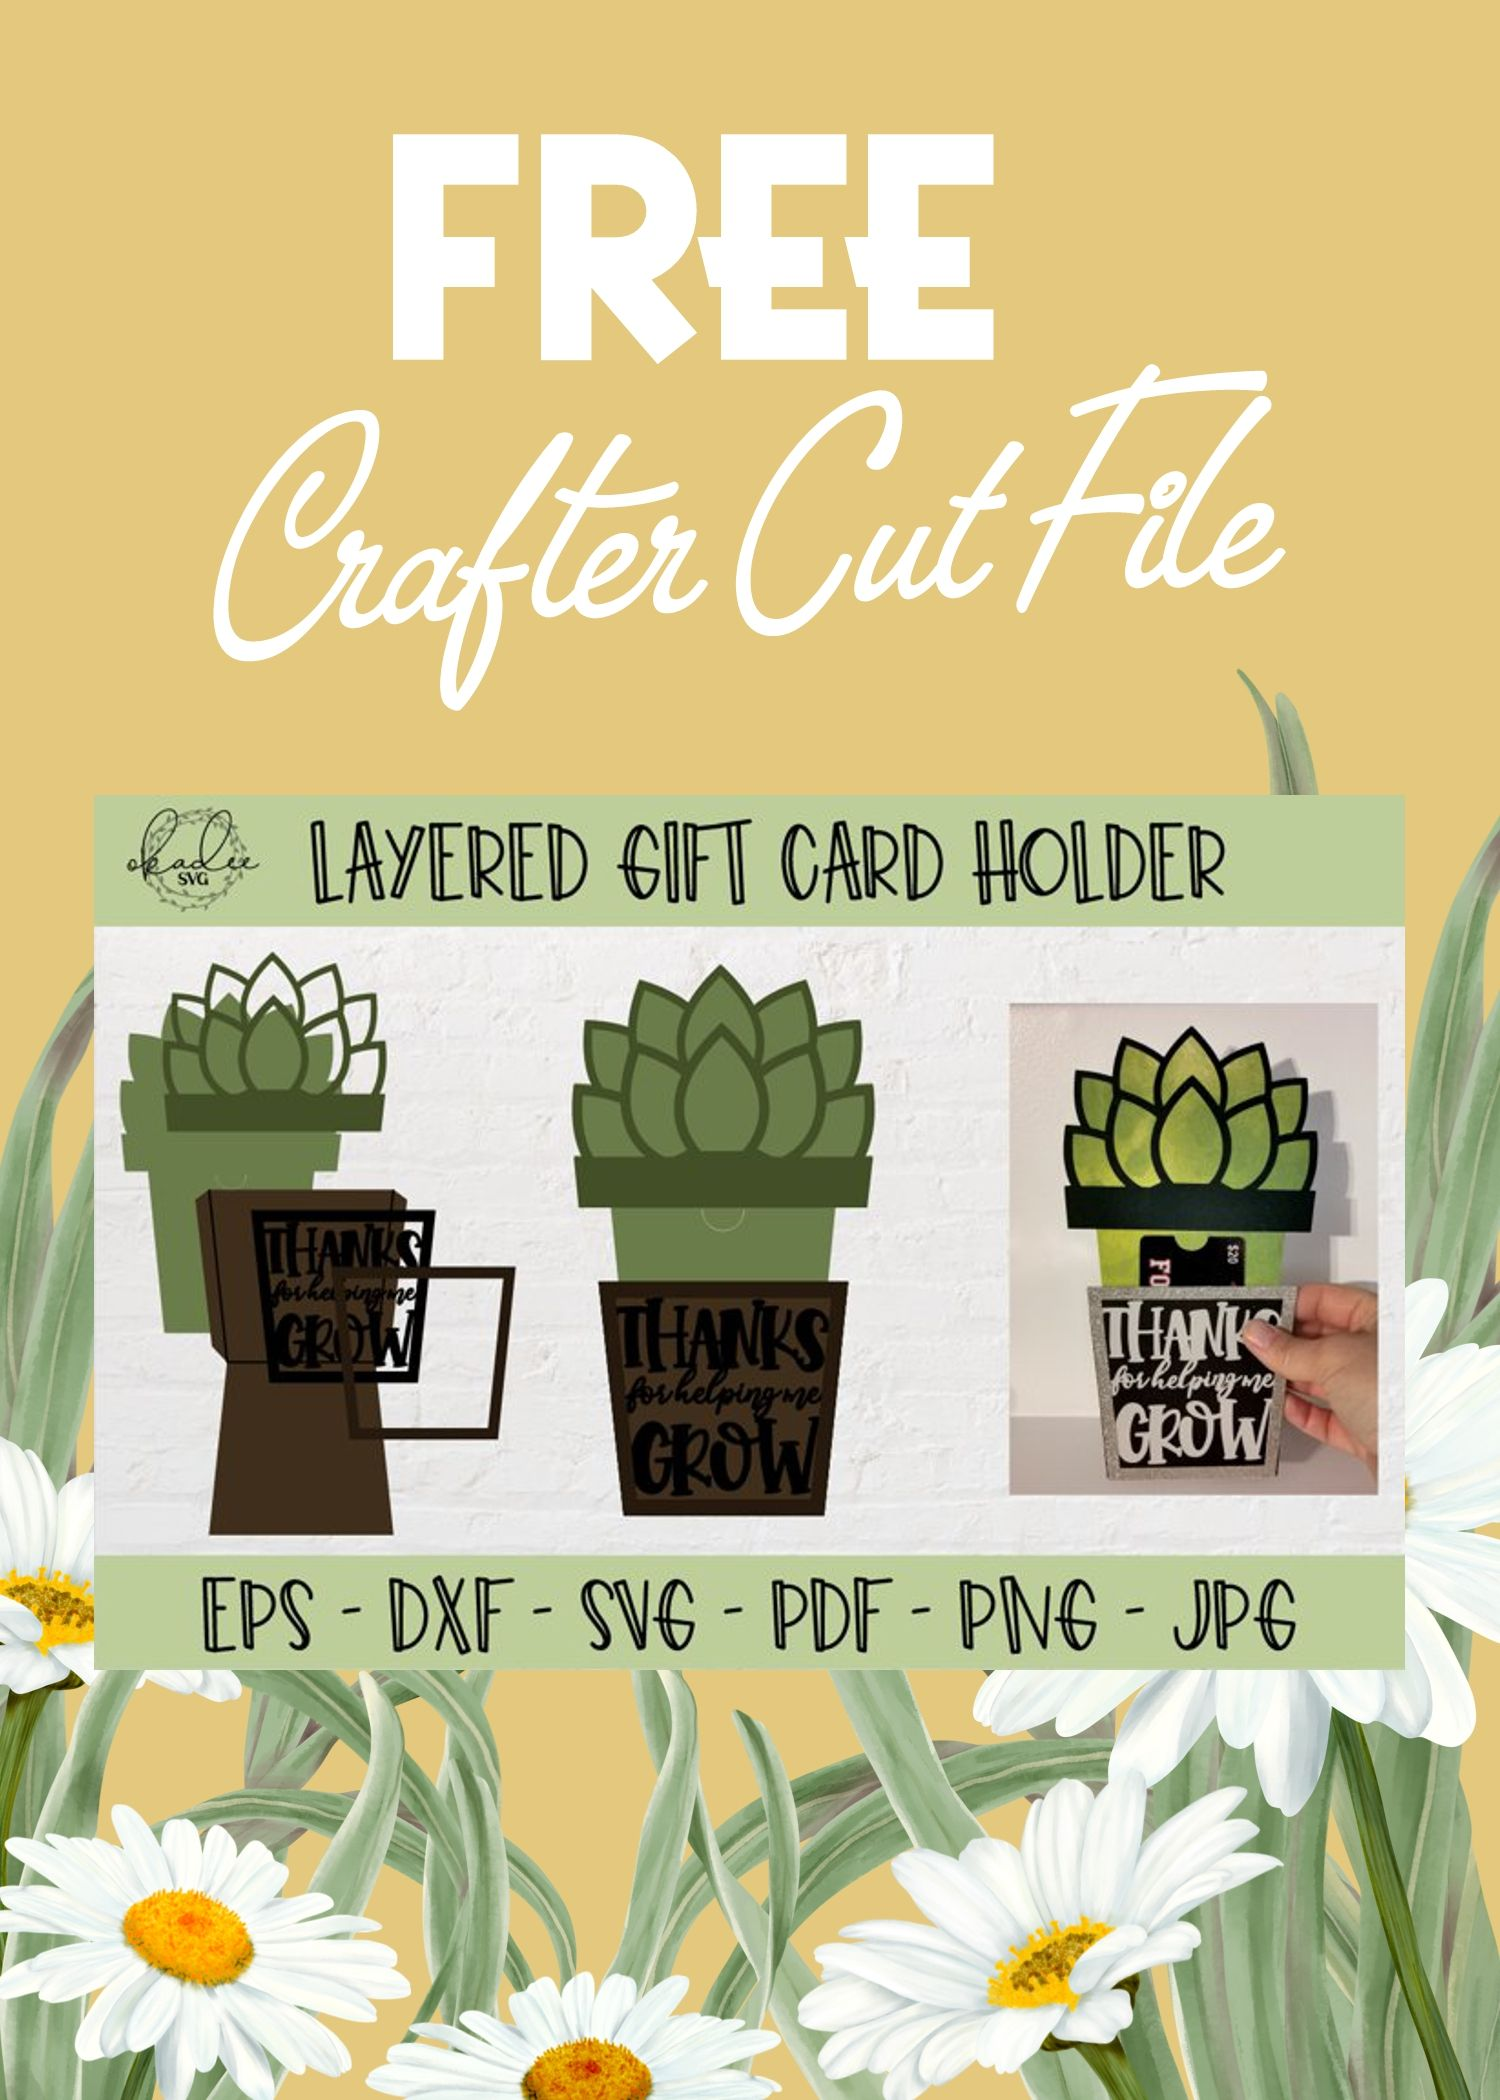 Free Thanks For Helping Me Grow Svg Gift Card Holder Svg By Okadee Svg Gift Card Holder Card Holder Gift Card